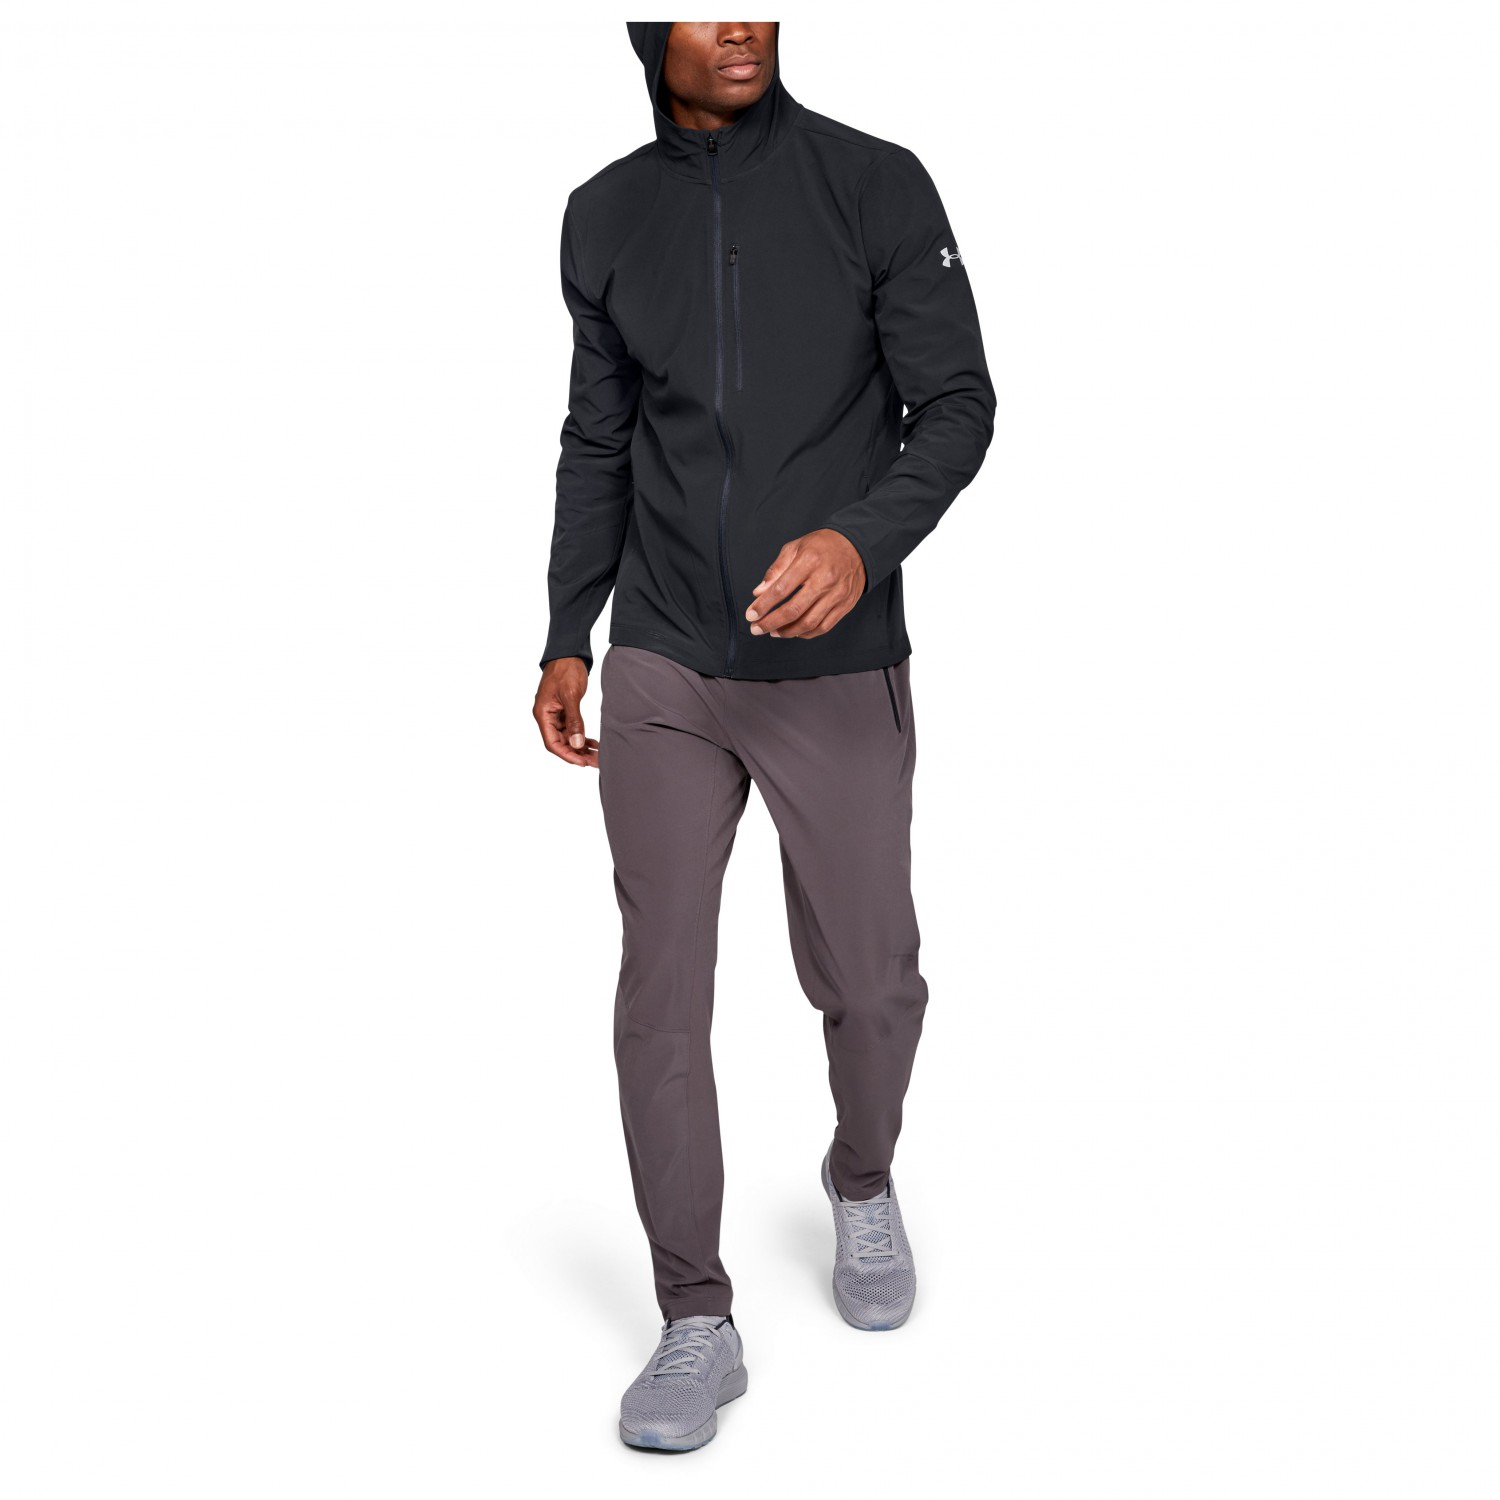 Under Armour Outrun The Storm Jacket V2 Running Jacket Men S